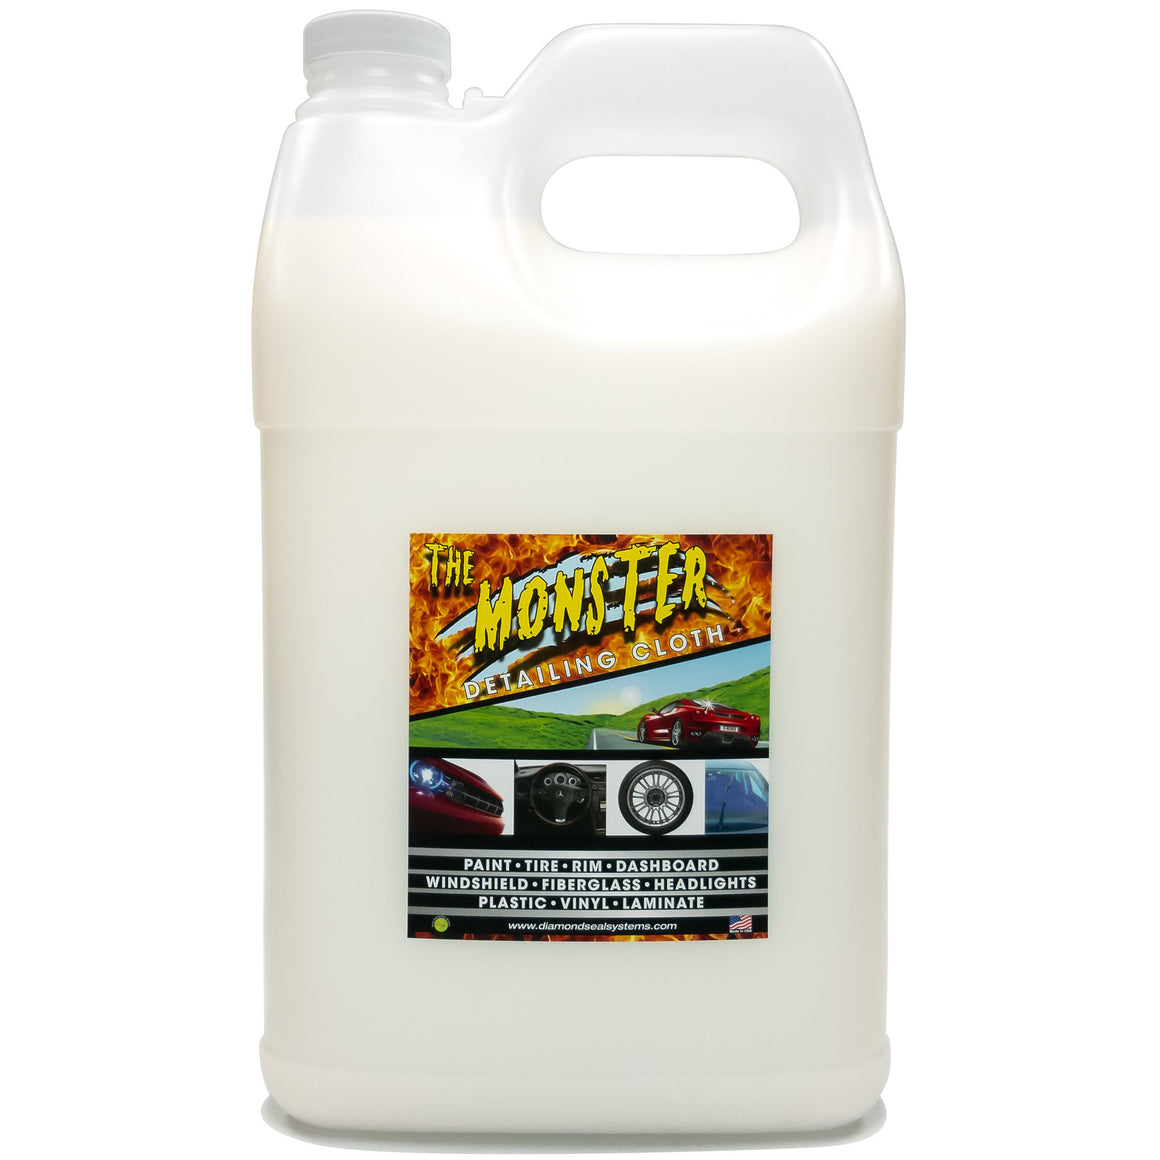 The Monster Cleaner for Auto, Boat, & RV Surfaces